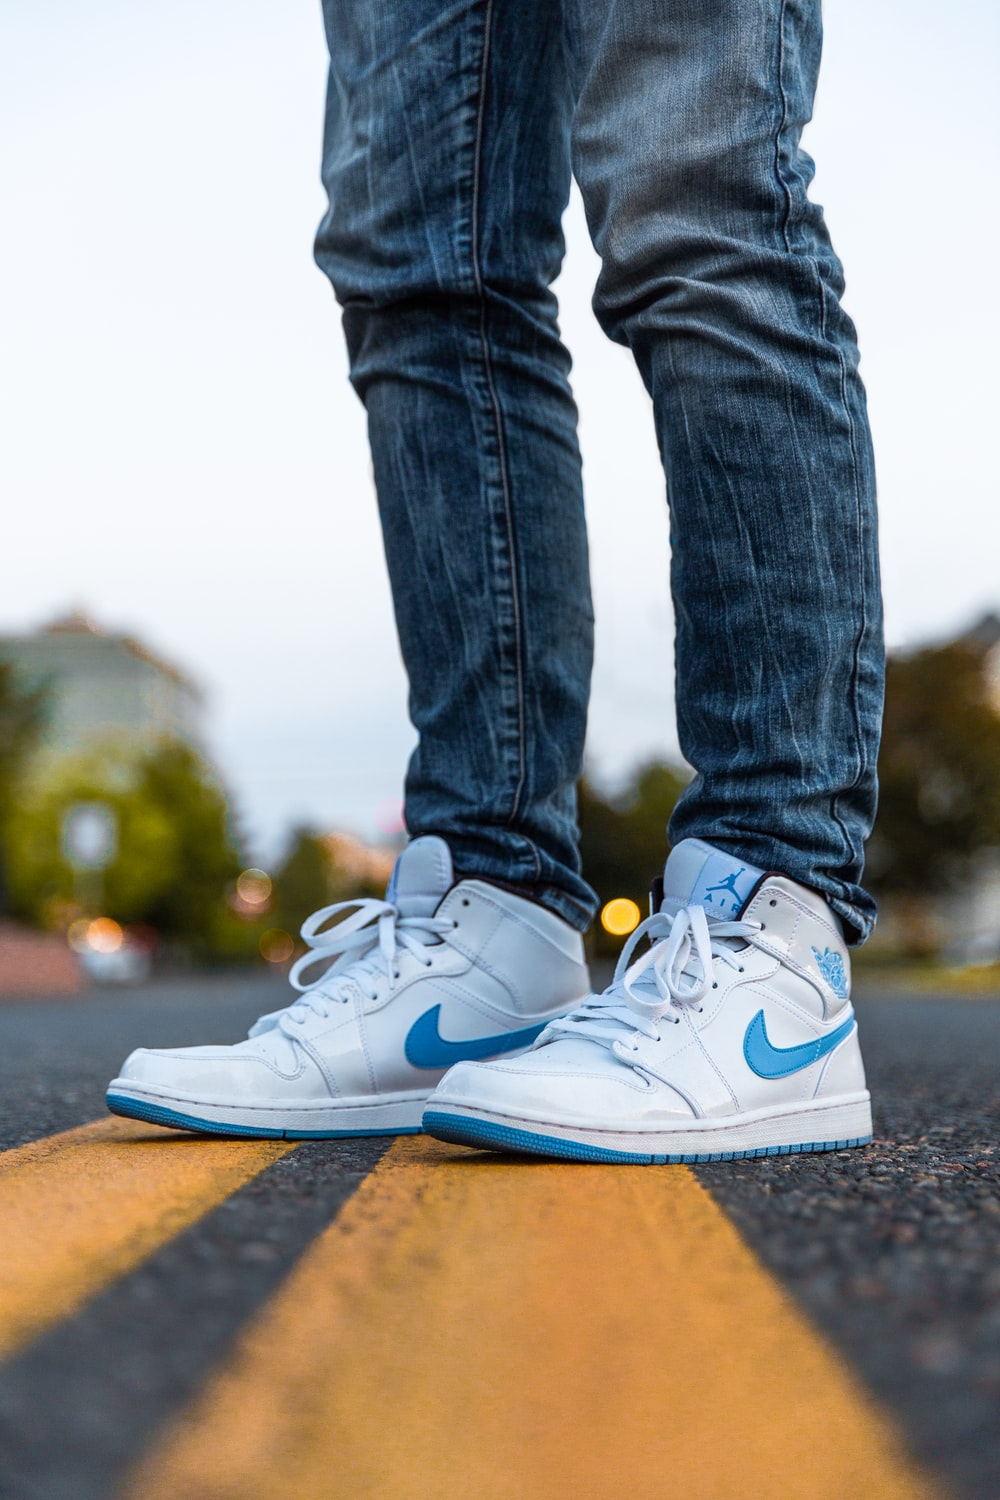 new style 96cd2 f9ac7 fashion · shoes · los angeles · selective focus photography of person  wearing blue-and-white Nike Air Jordan 1 s